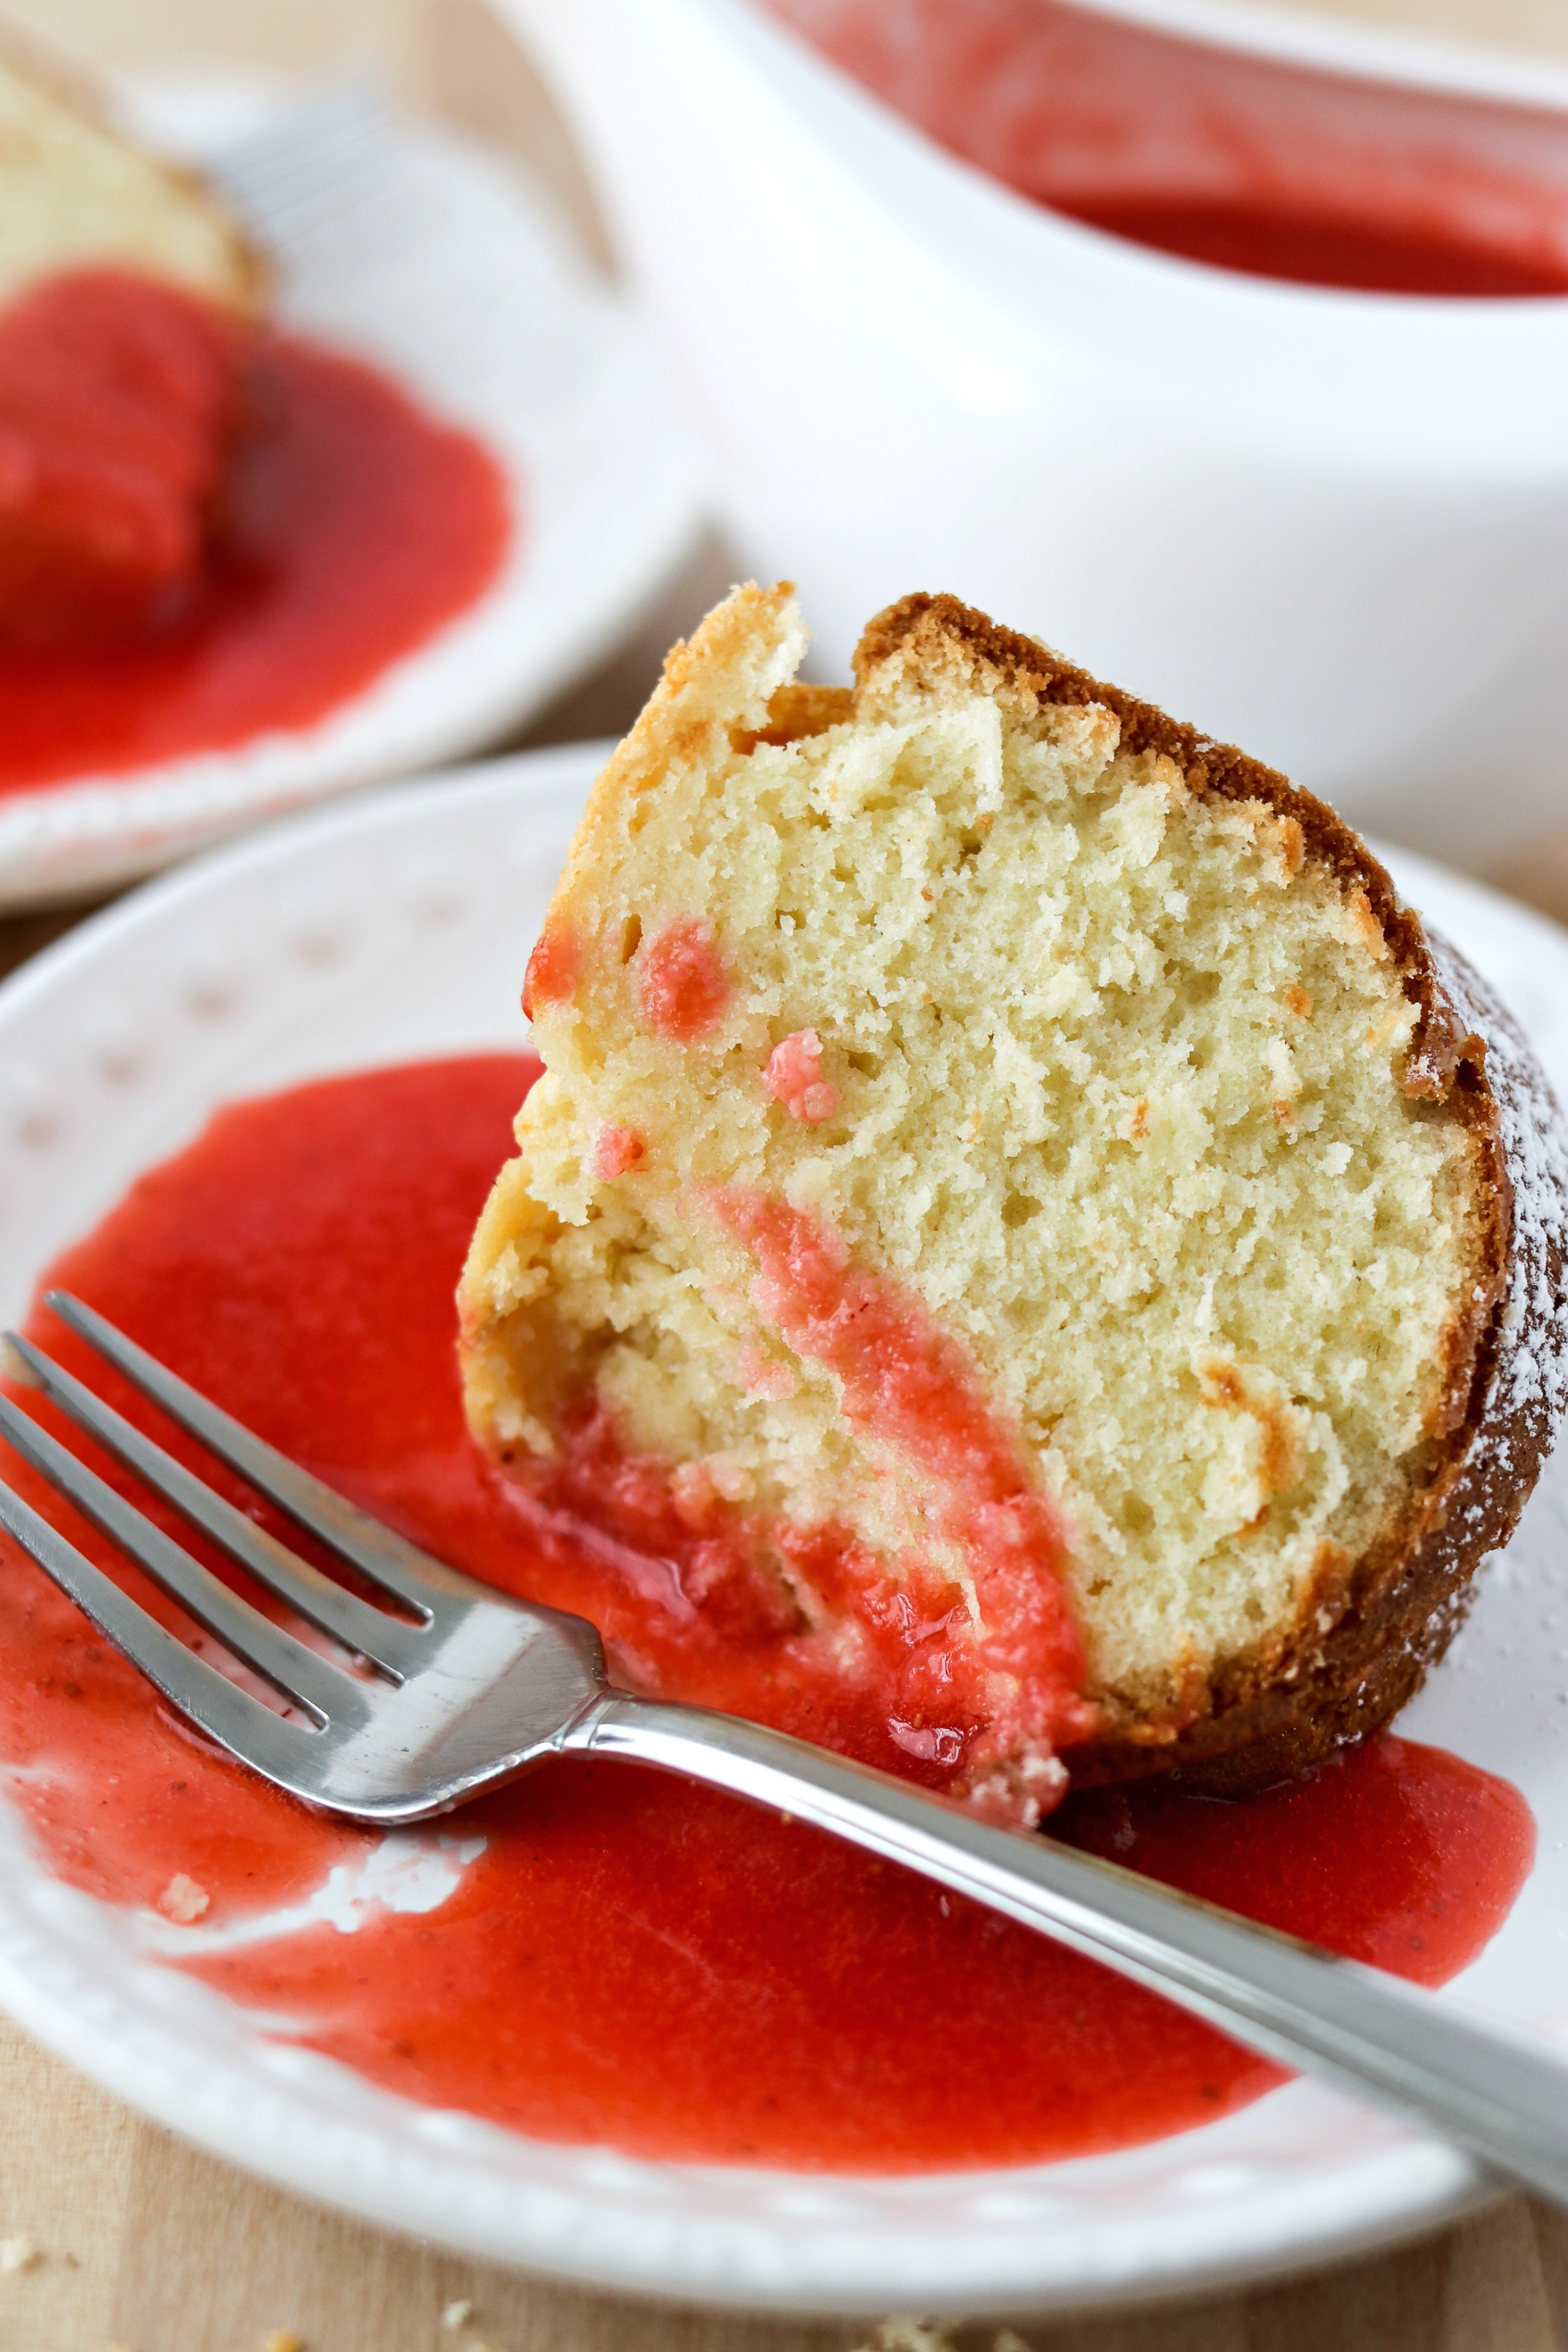 Cream Cheese Pound Cake with Strawberry Coulis - Think you know pound cake?! Well, you haven't lived until you've tried one with cream cheese in the batter. It's super dense and creamy at the same time. The addition of the strawberry coulis adds a freshness and sweetness that you can only get from fresh fruit. Simply perfection.